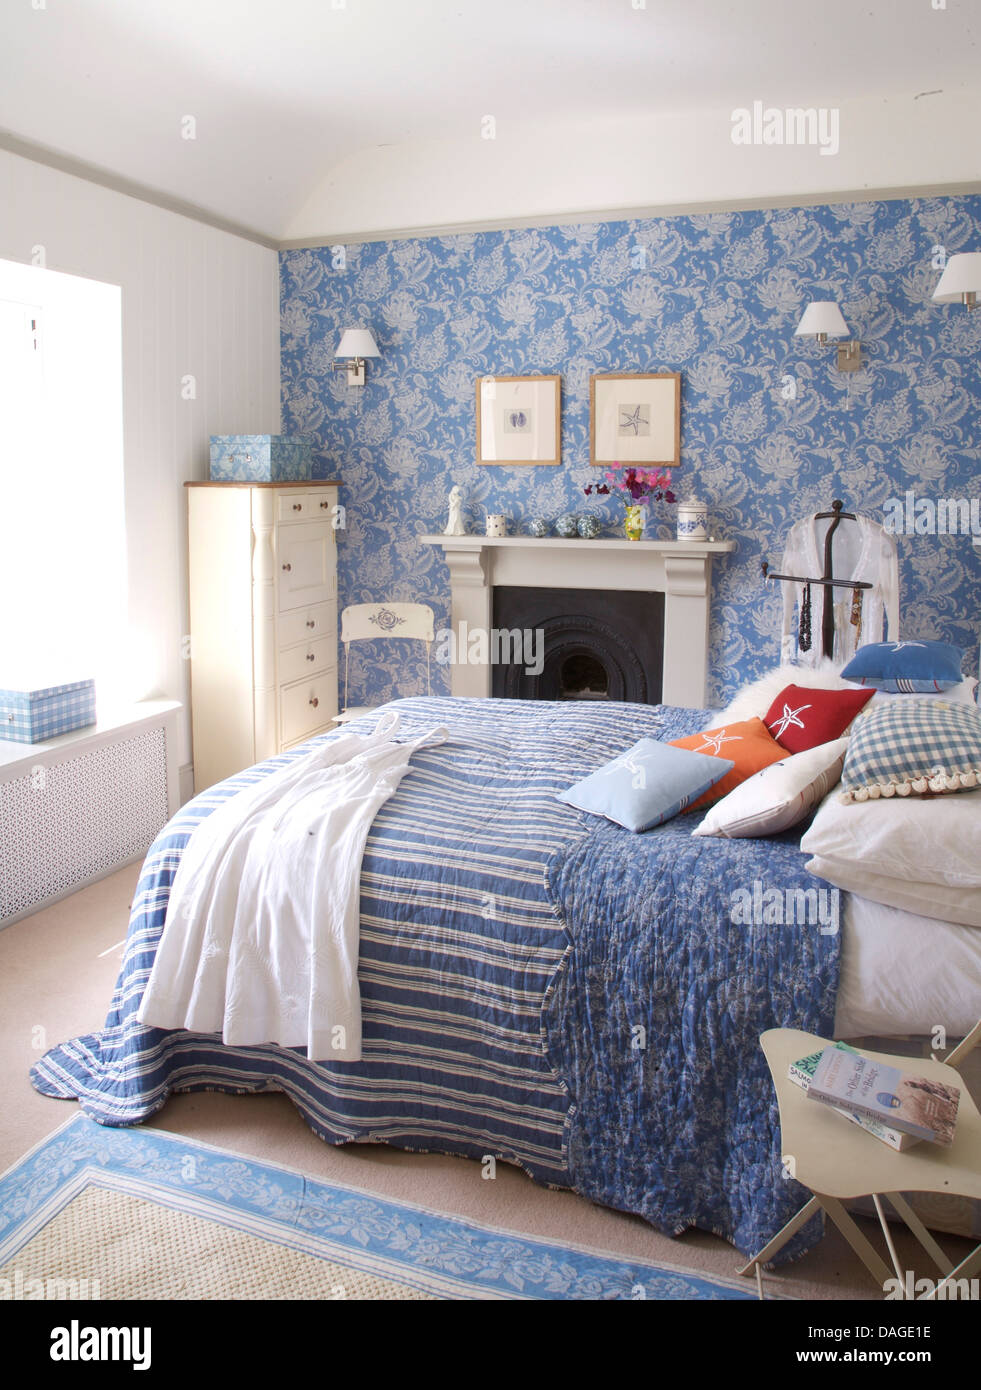 Blue Striped Quilt With Floral Lining On Bed In Coastal